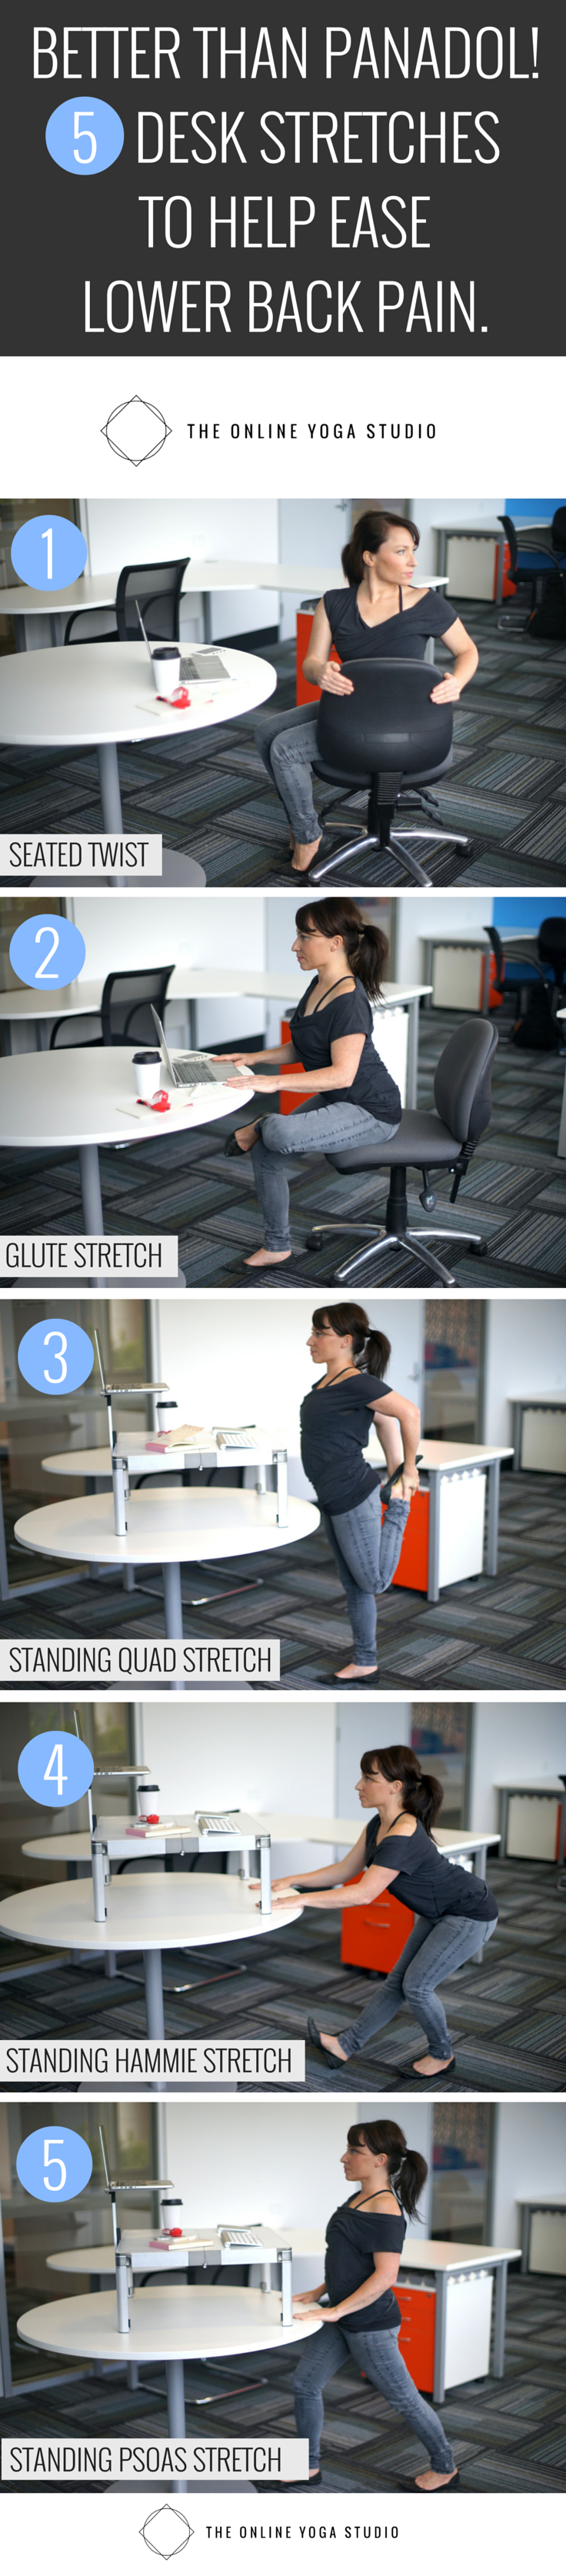 DESK STRETCHES FOR LOWER BACK PAIN